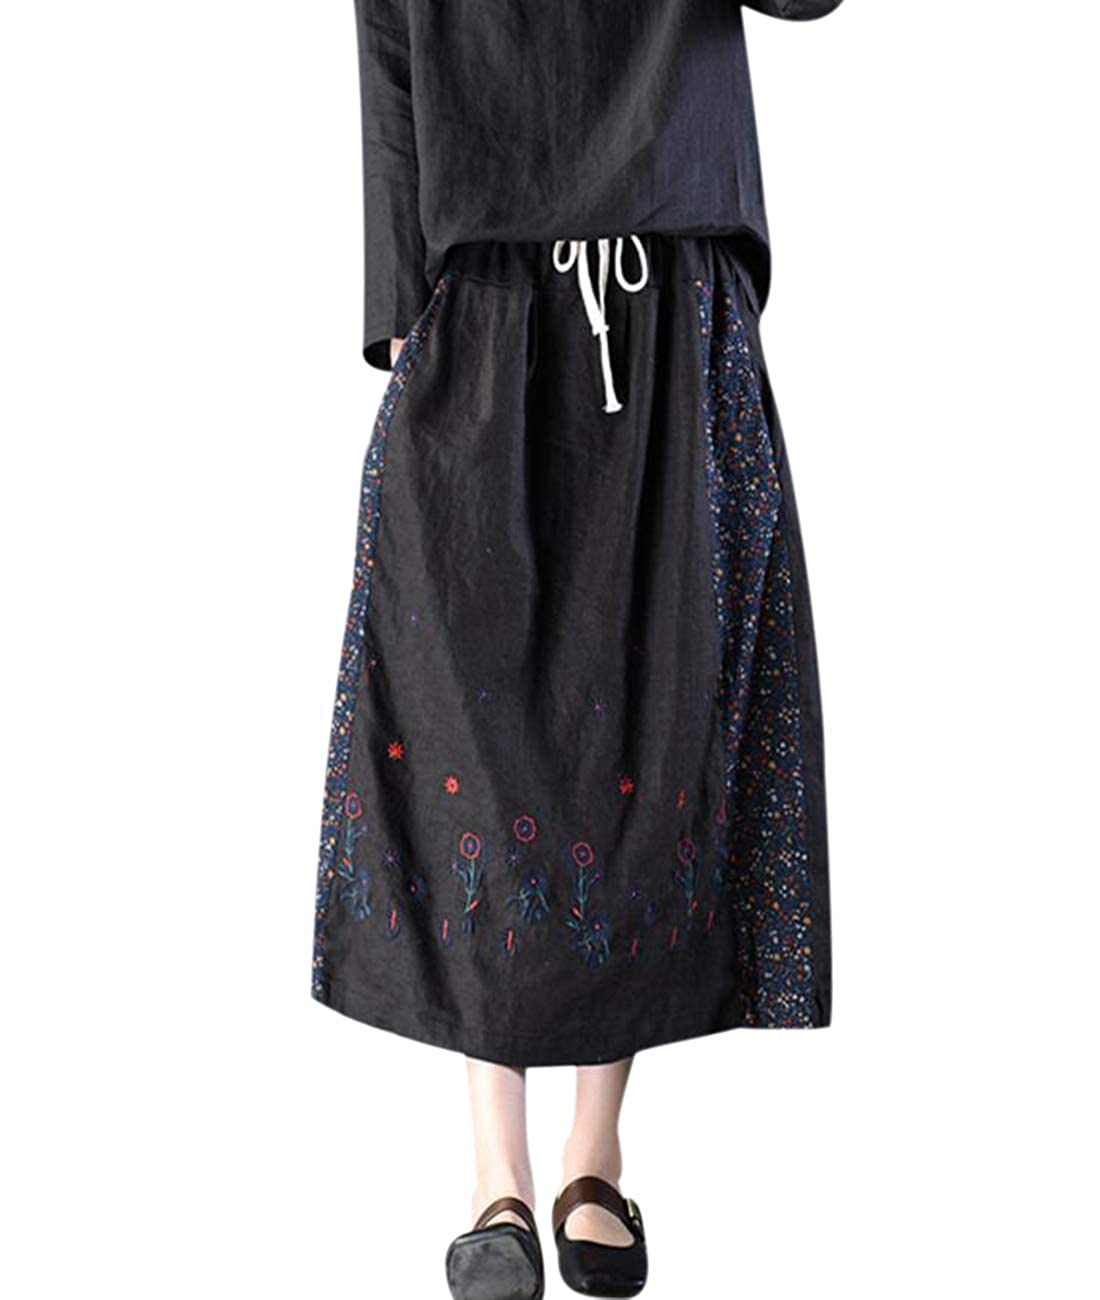 ee772493f9 Top5  YESNO Y35 Women Casual Loose  A  Skirt Ethnic Embroidery Chinese  Traditional Frog Pocket